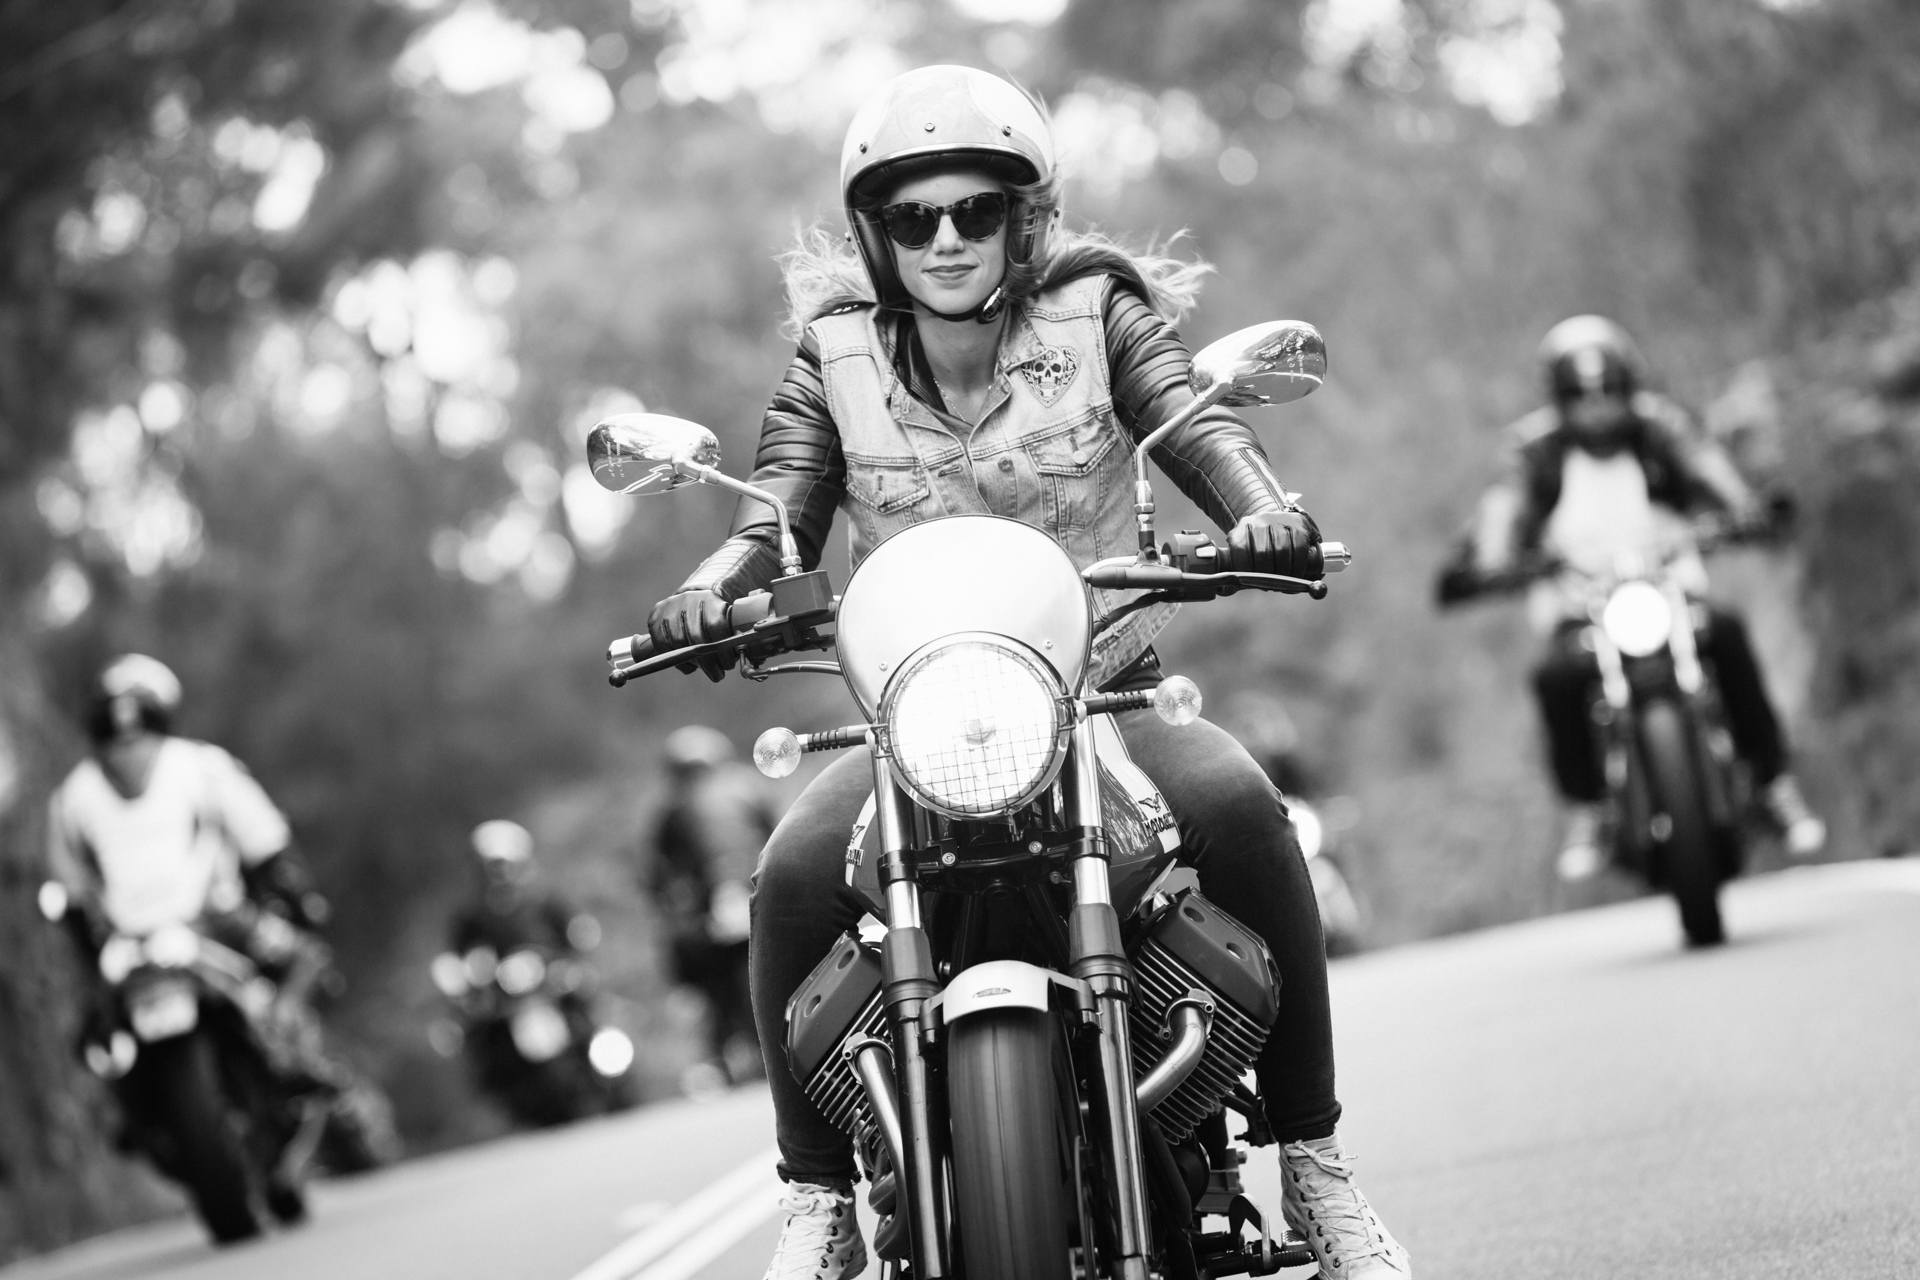 Nina from the Throttle Dolls on a Moto Guzzi V7 Scrambler